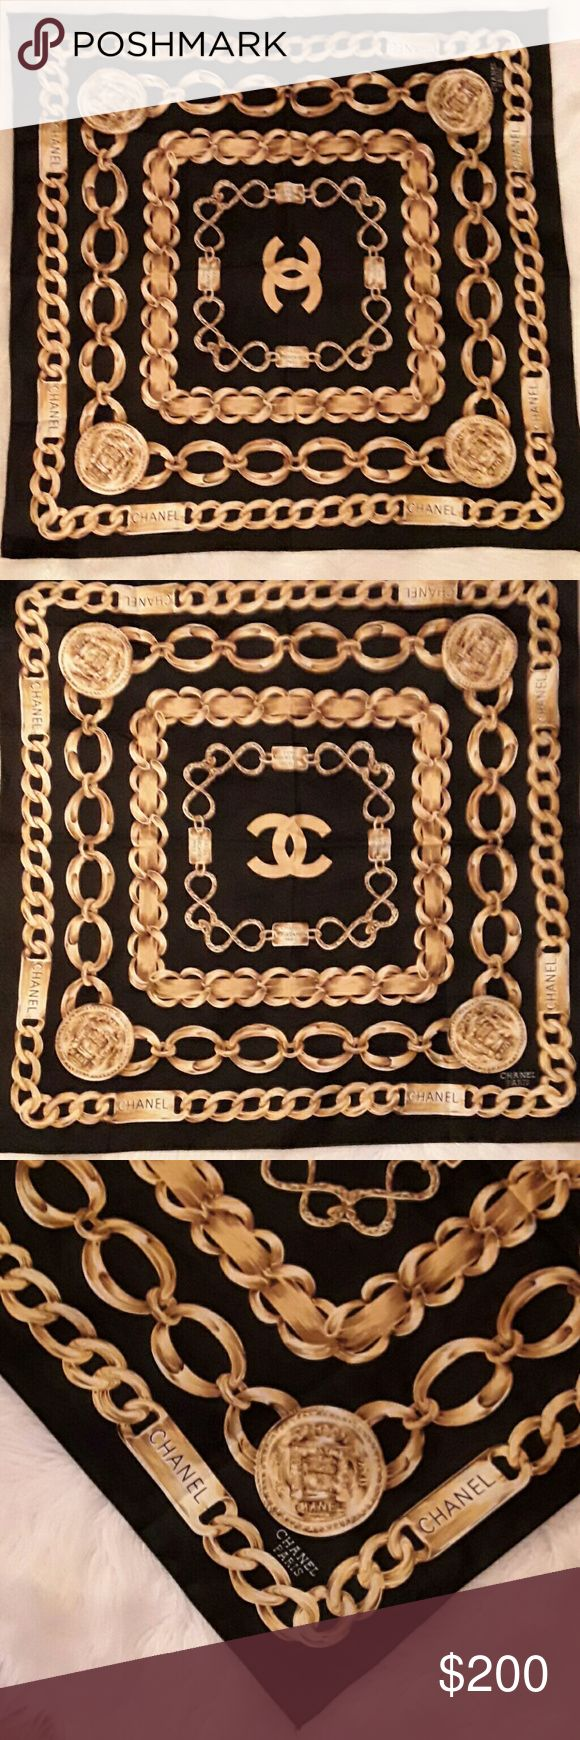 CHANEL SCARF EUC Beautiful chanel back/gold/yellow/white scarf stunning 33 x 33 silk trade value higher Other